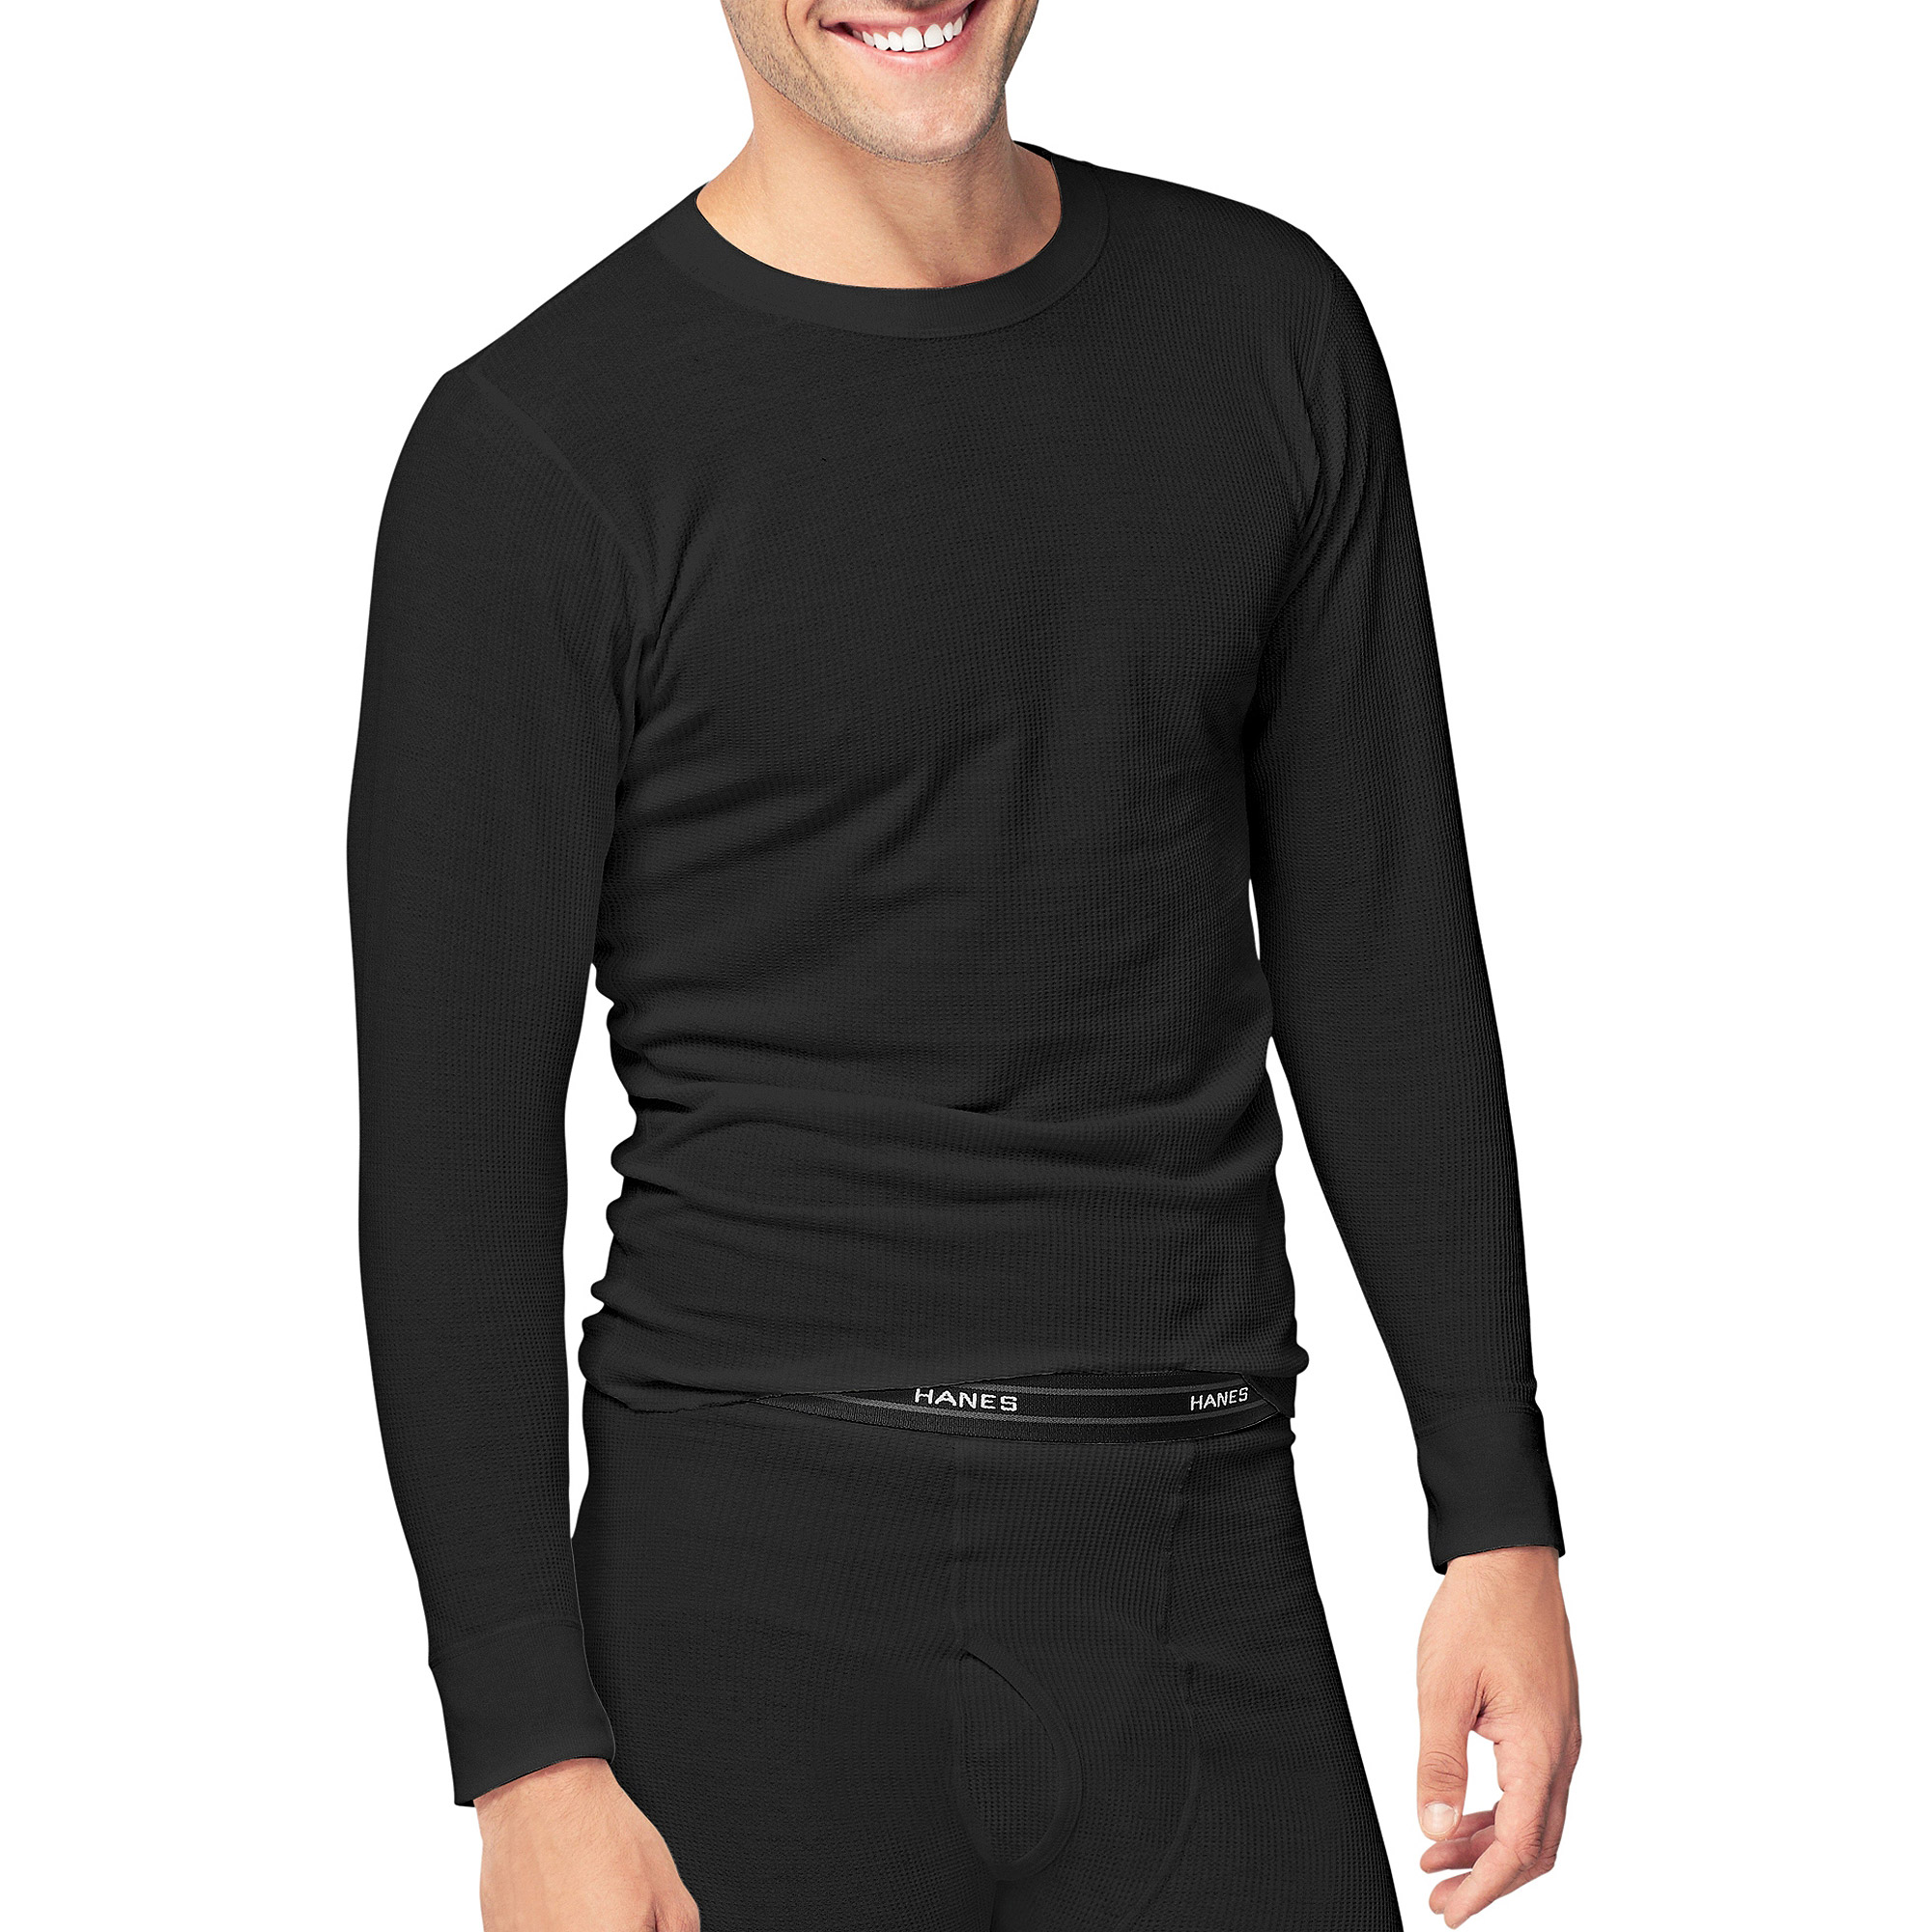 Hanes Men's Beefy Thermal Underwear Crew